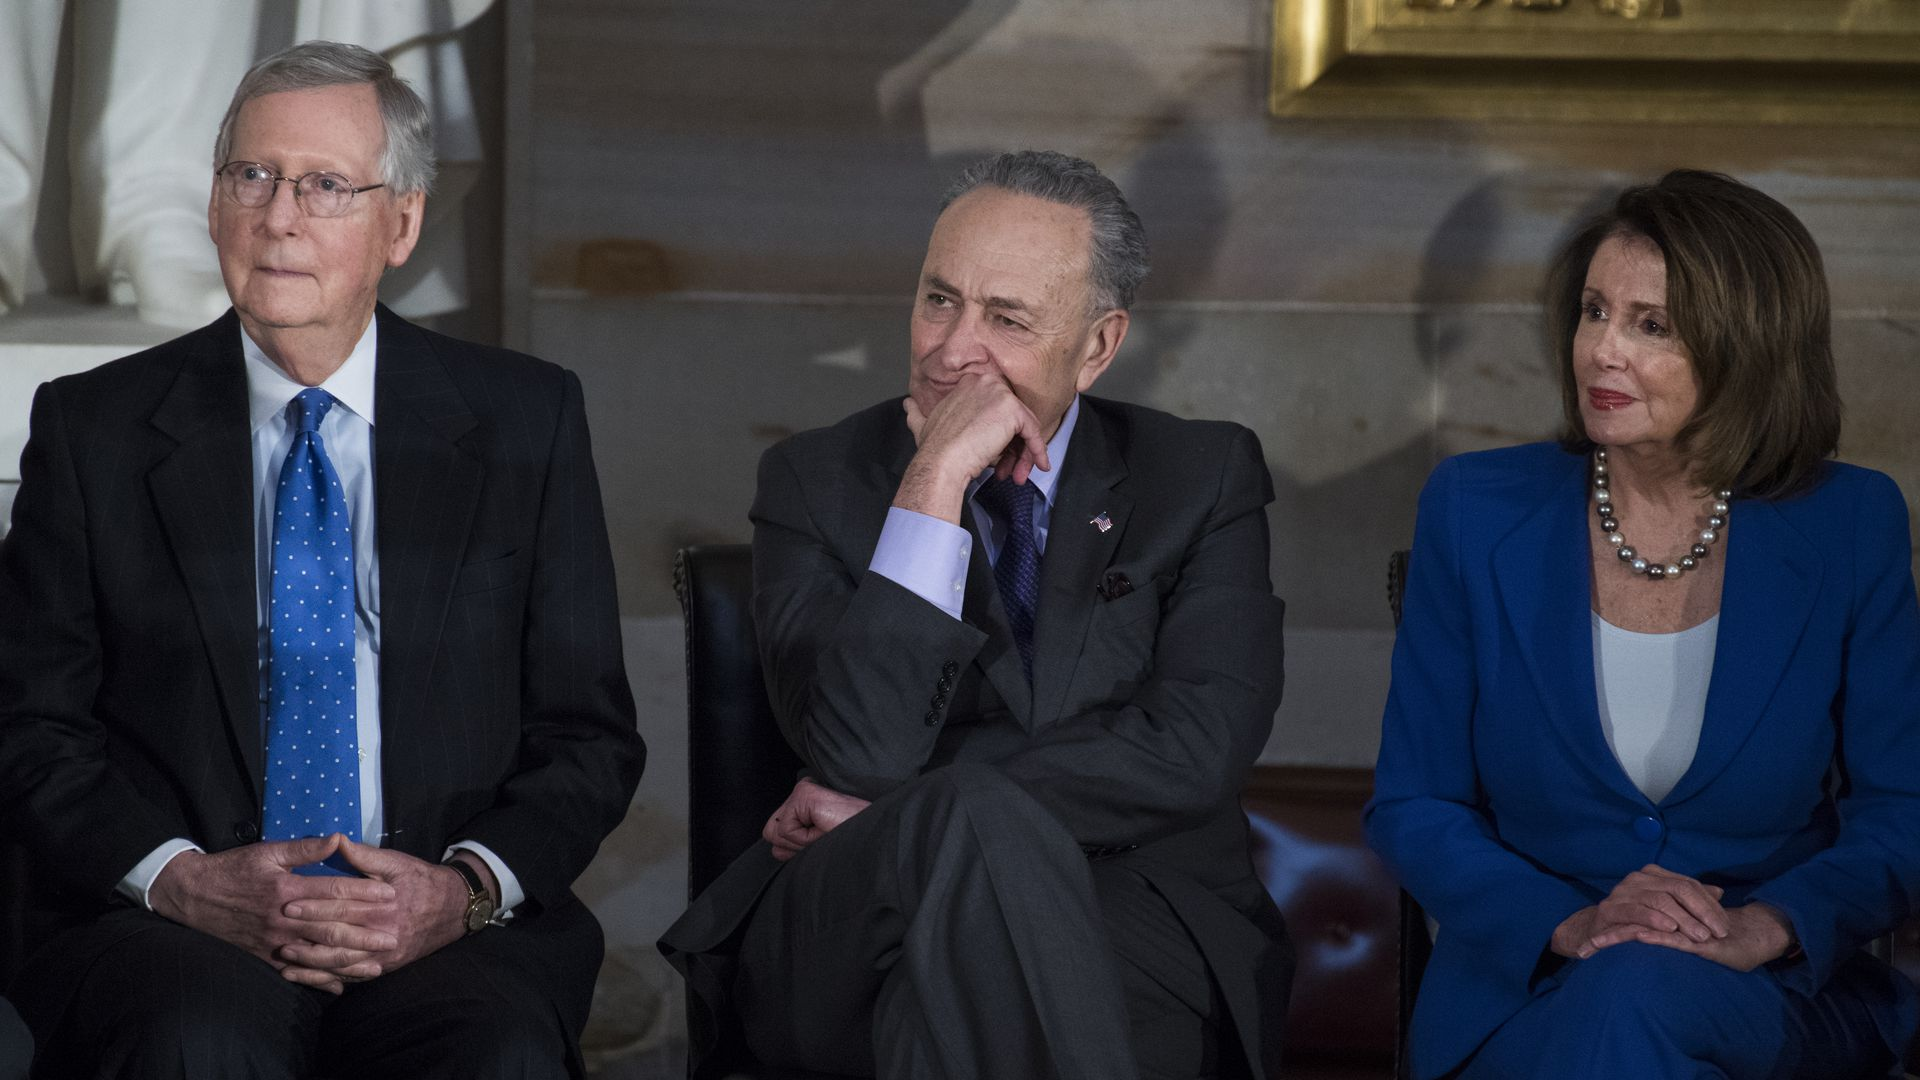 McConnell, Pelosi and Schumer